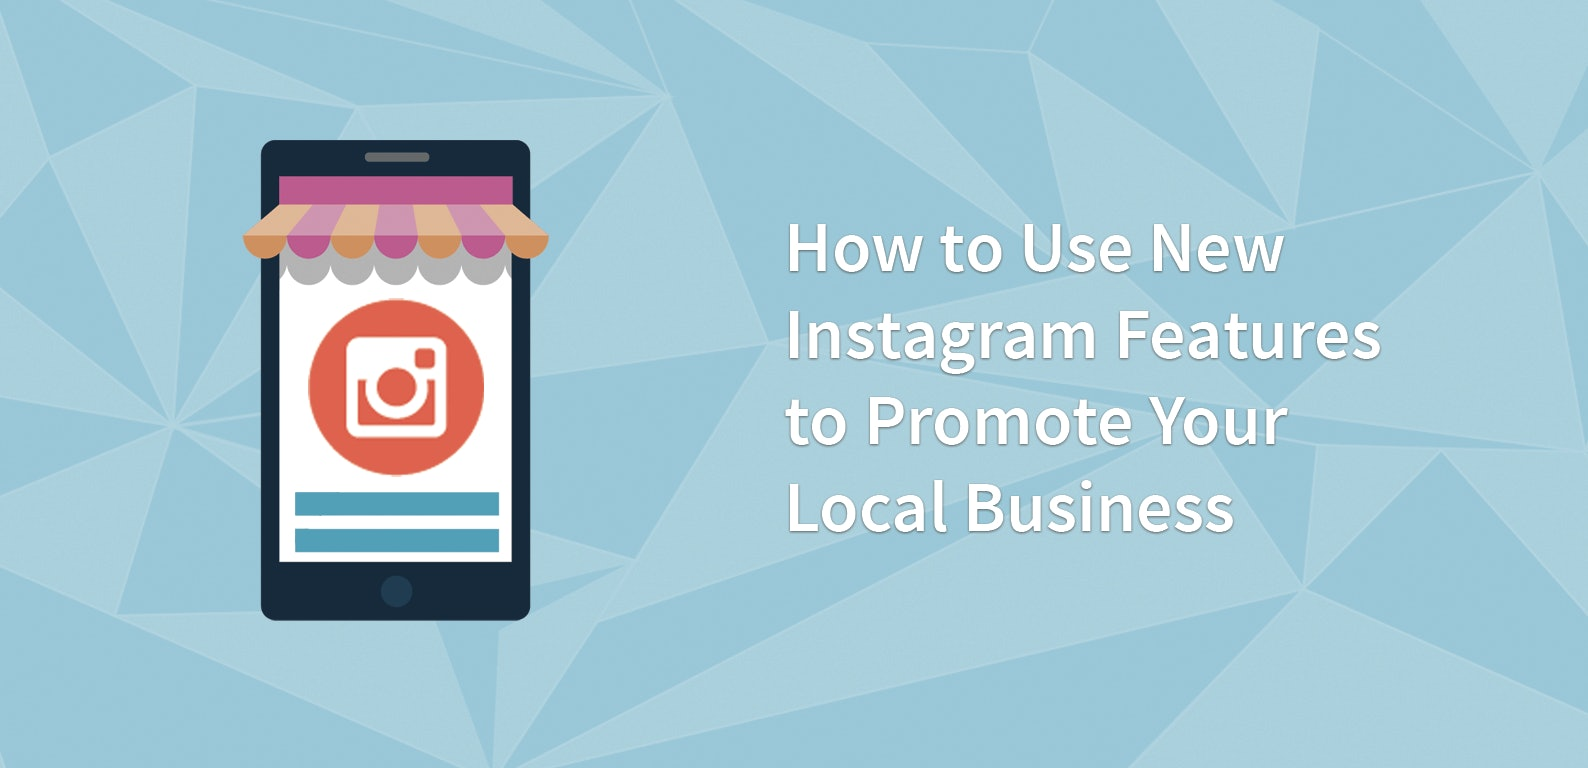 How to Use New Instagram Features to Promote Your Local Business